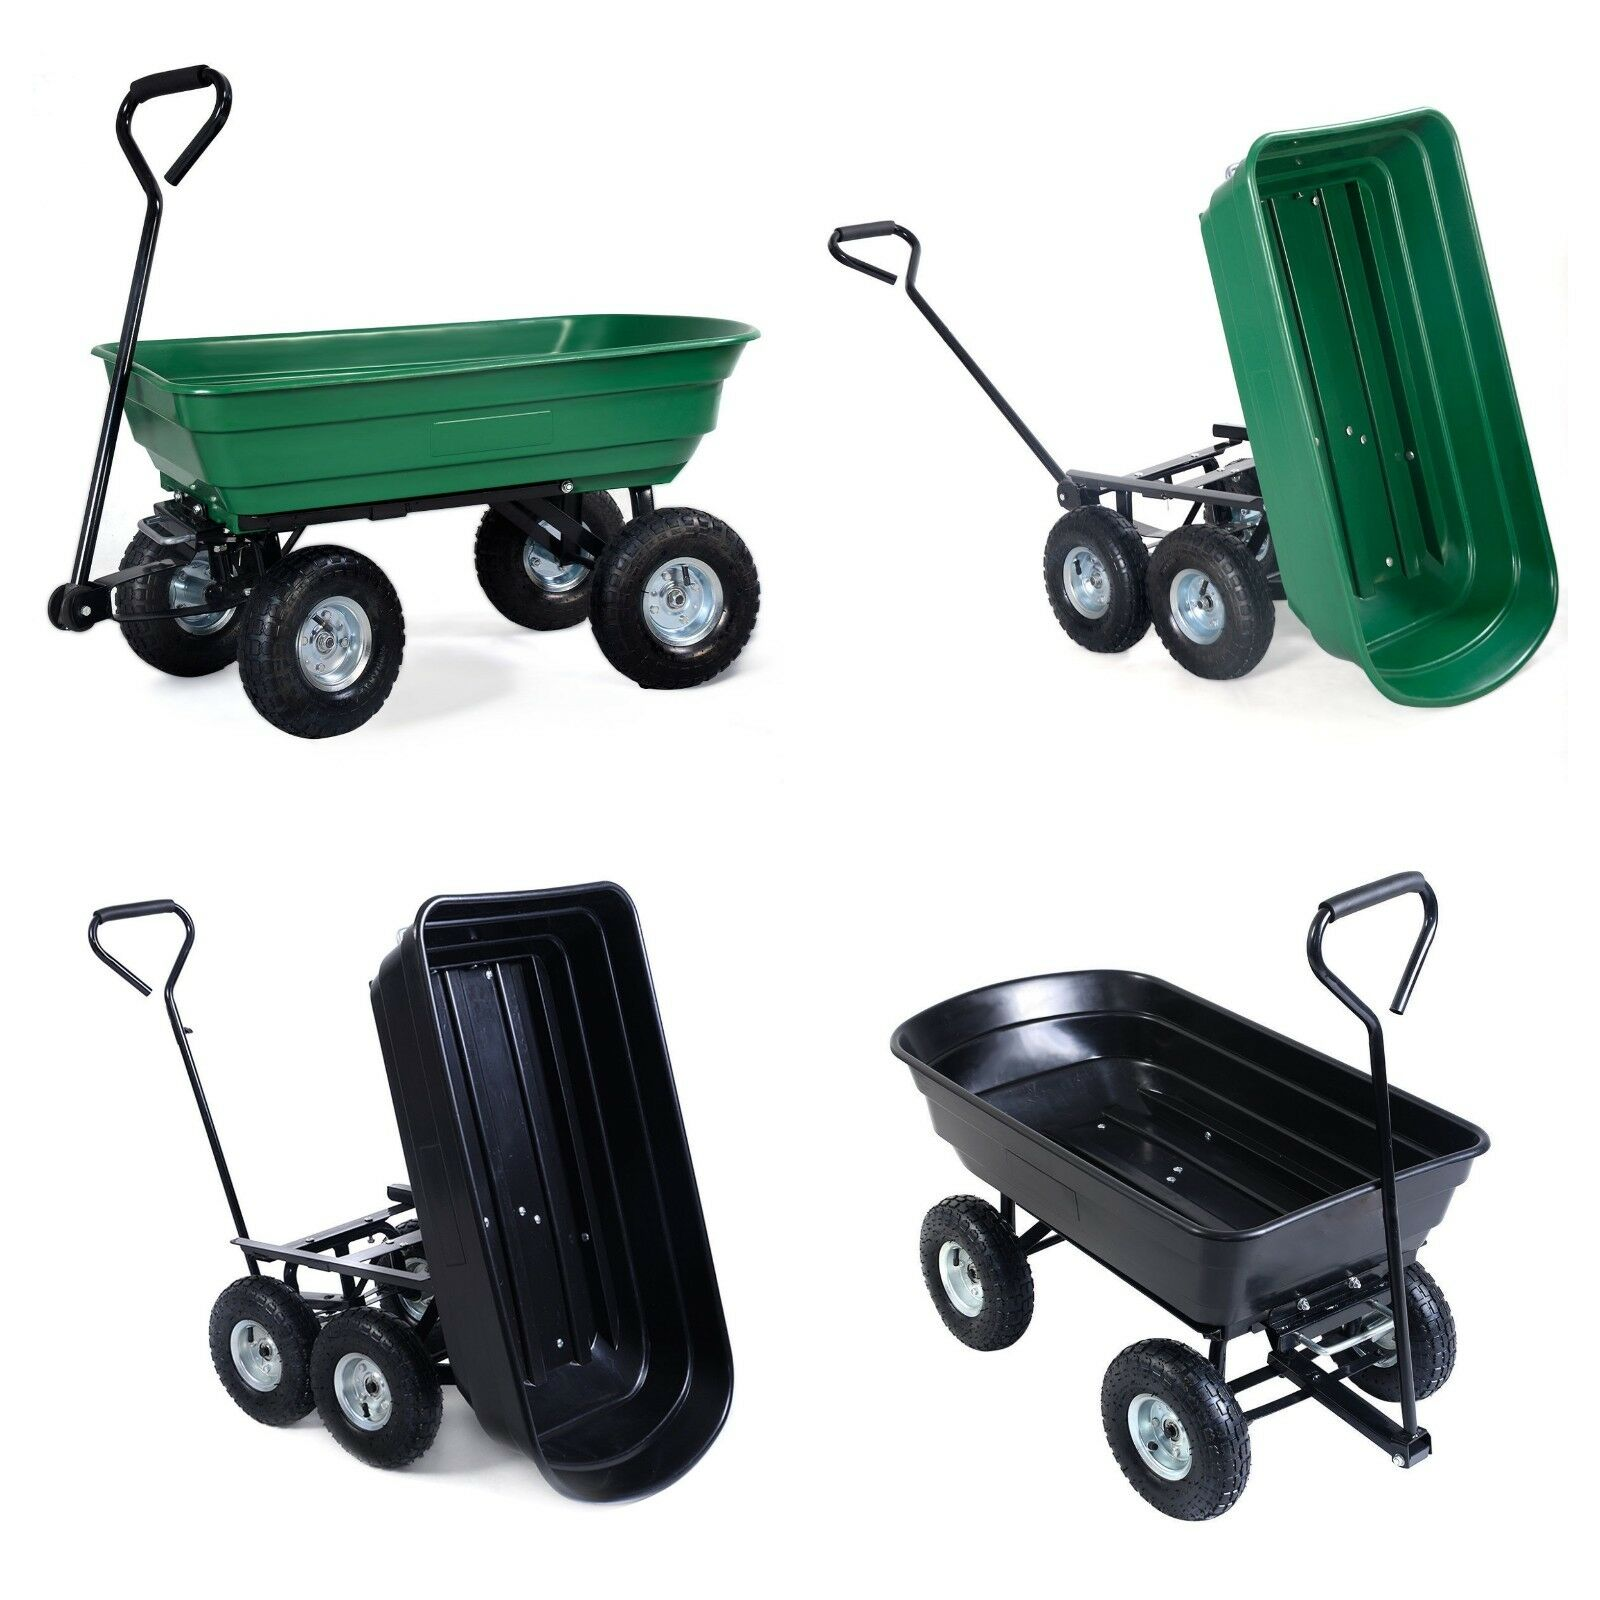 Garden Trolley Cart